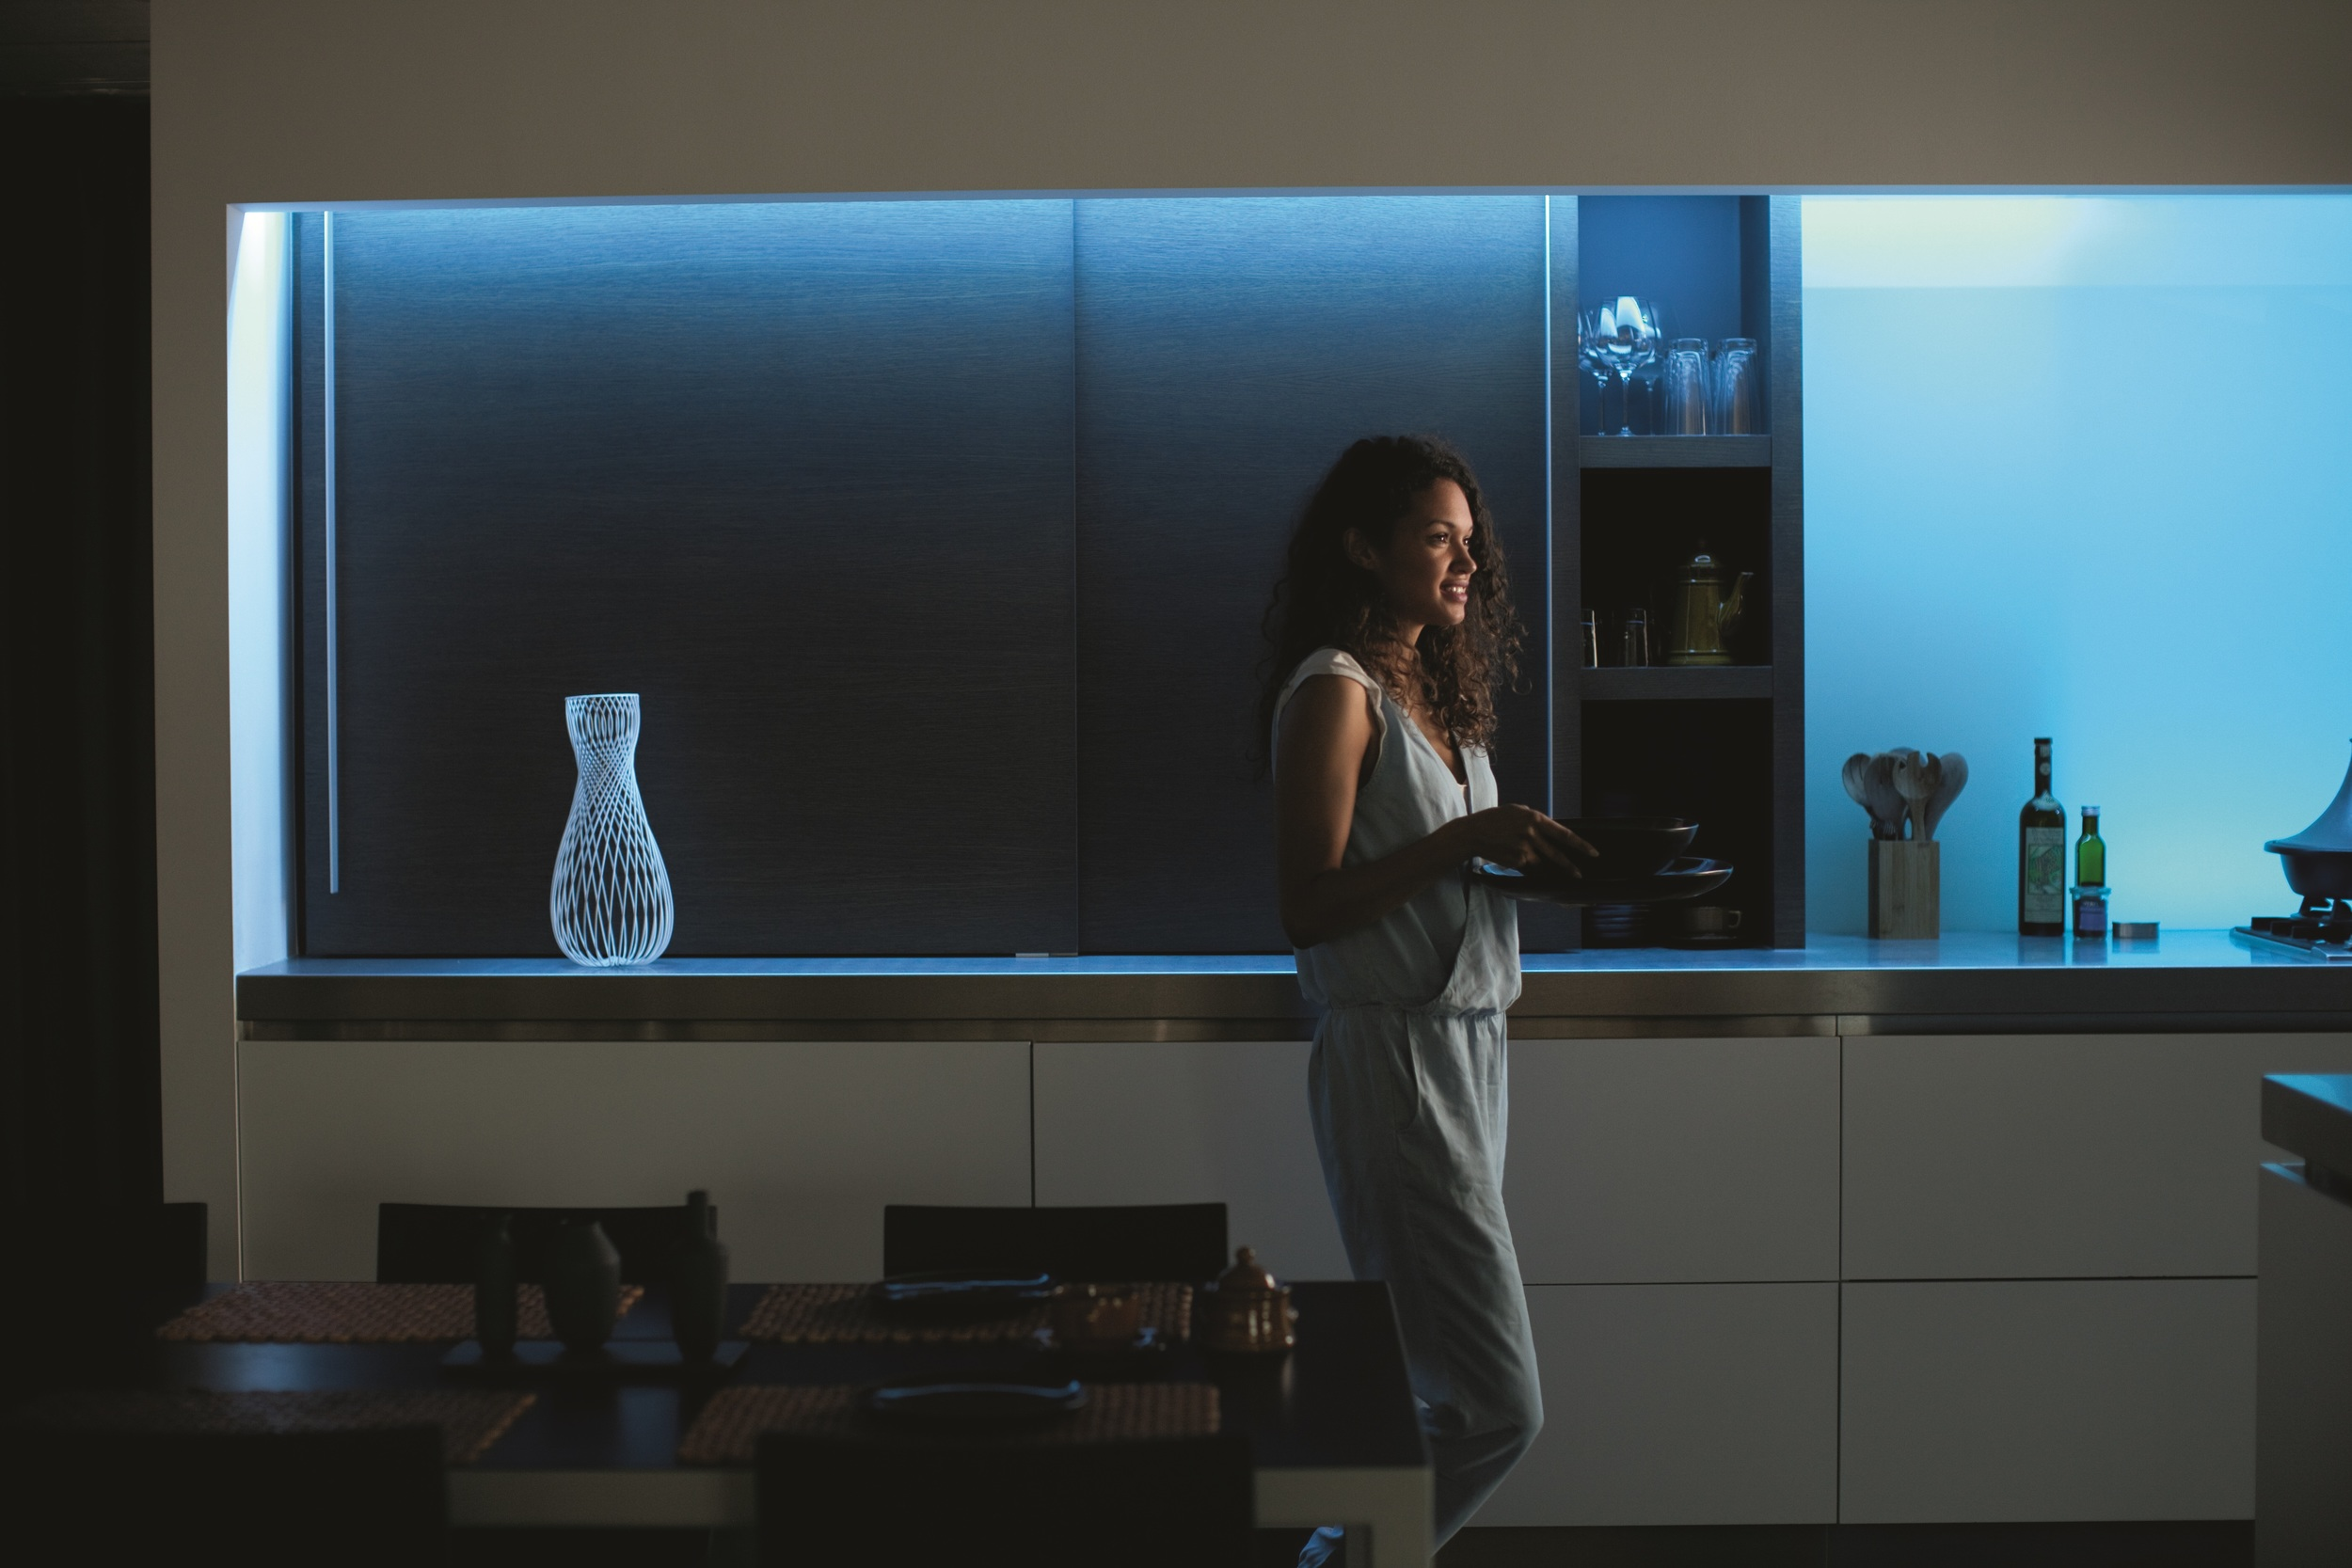 PHILIPS HUE colour ambiance - PHOTOGRAPH COURTESY OF PHILIPS